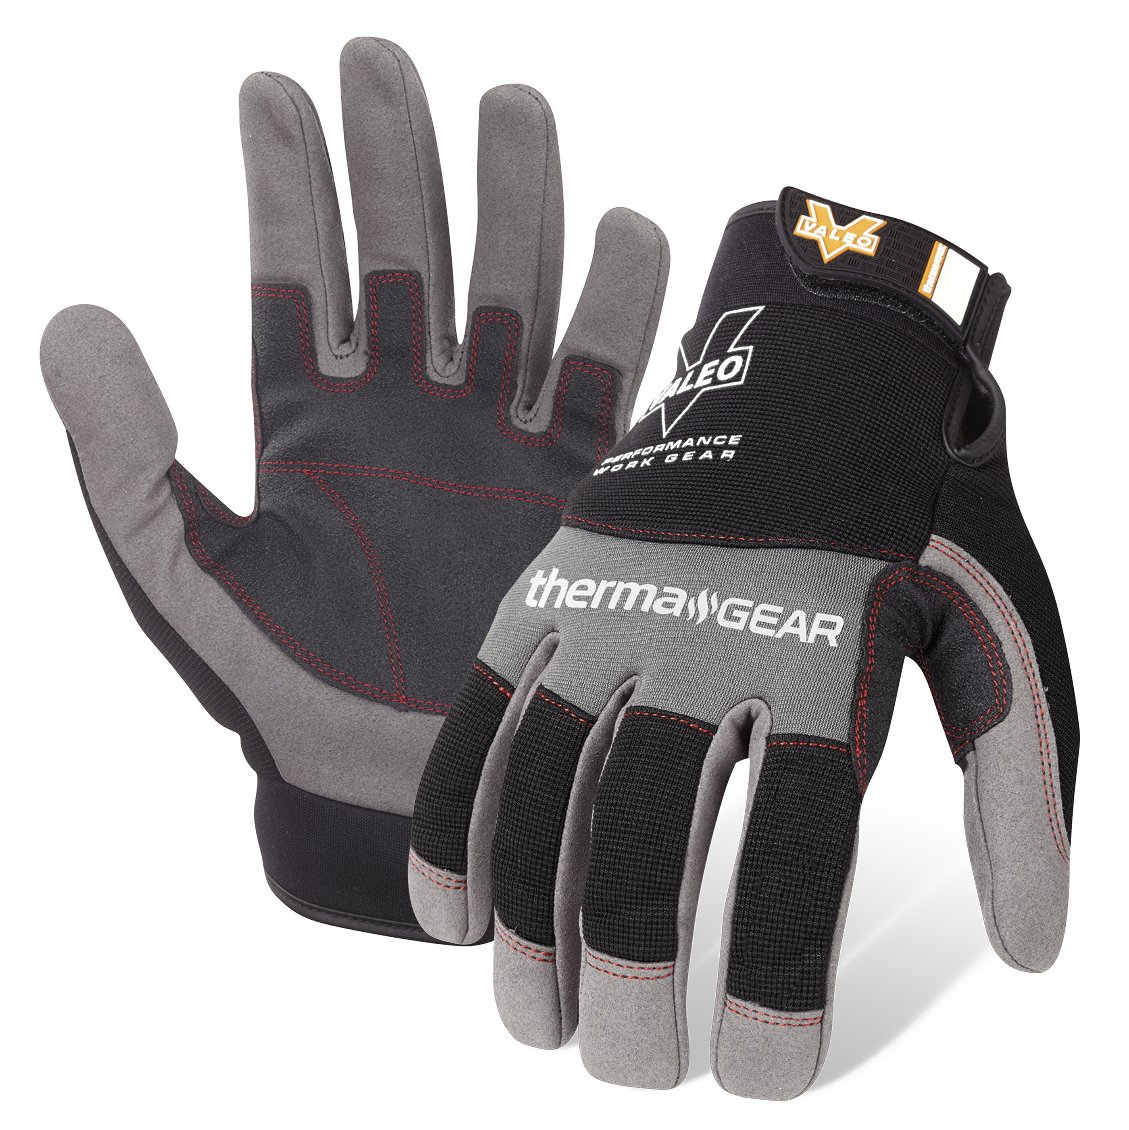 Valeo Industrial V720 ThermaGear Cold Weather Mechanics Gloves, VI9544, Pair,  Grey, XL